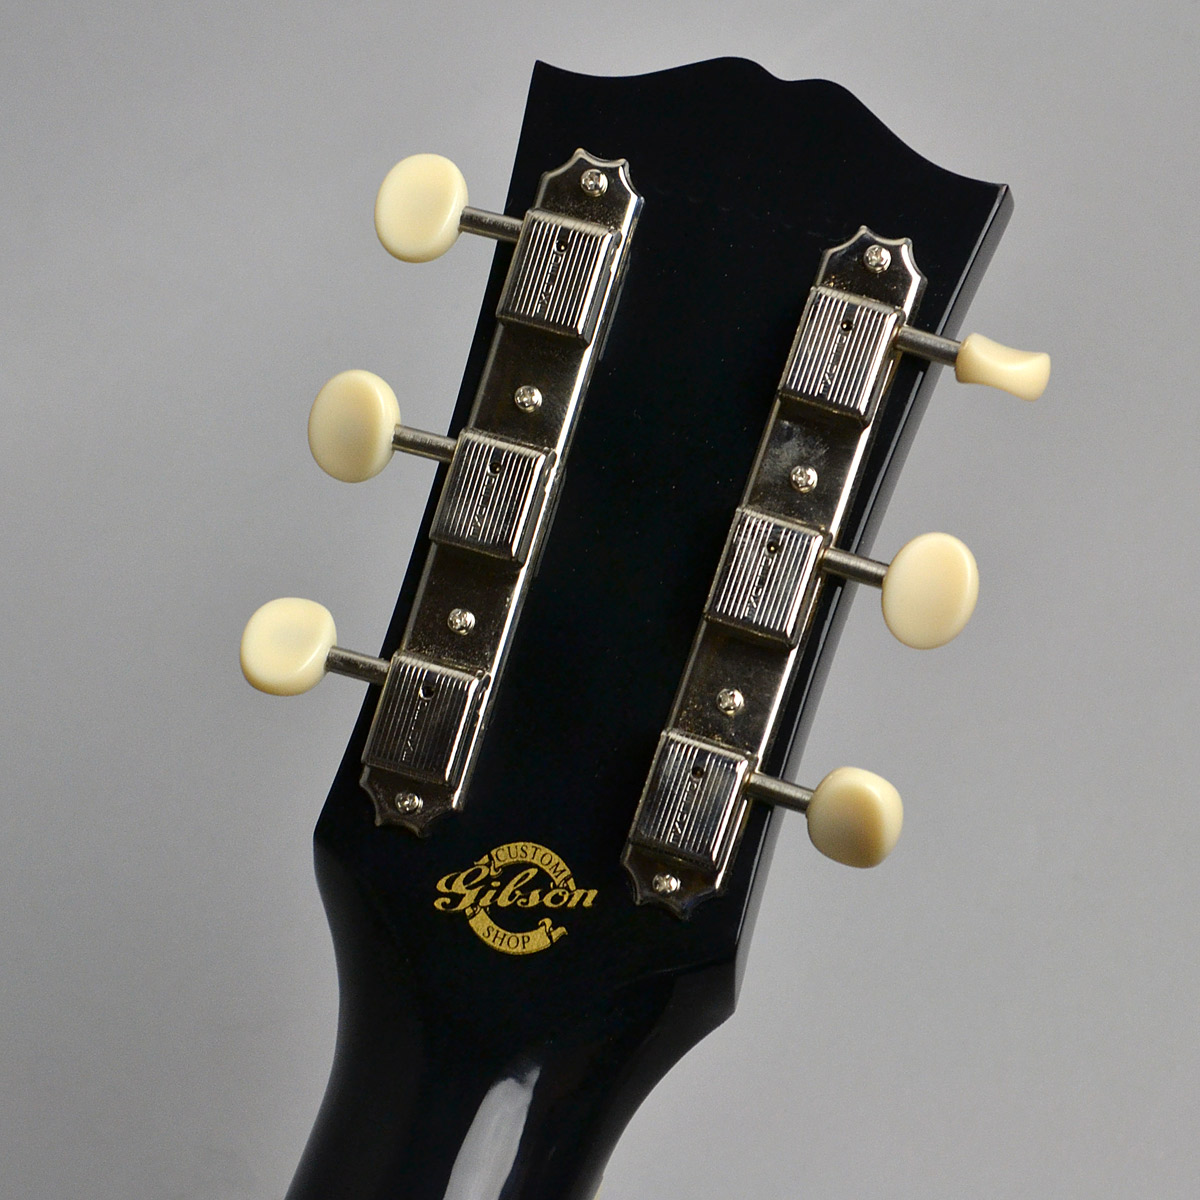 Monthly Limited 1960s J-45のヘッド裏-アップ画像